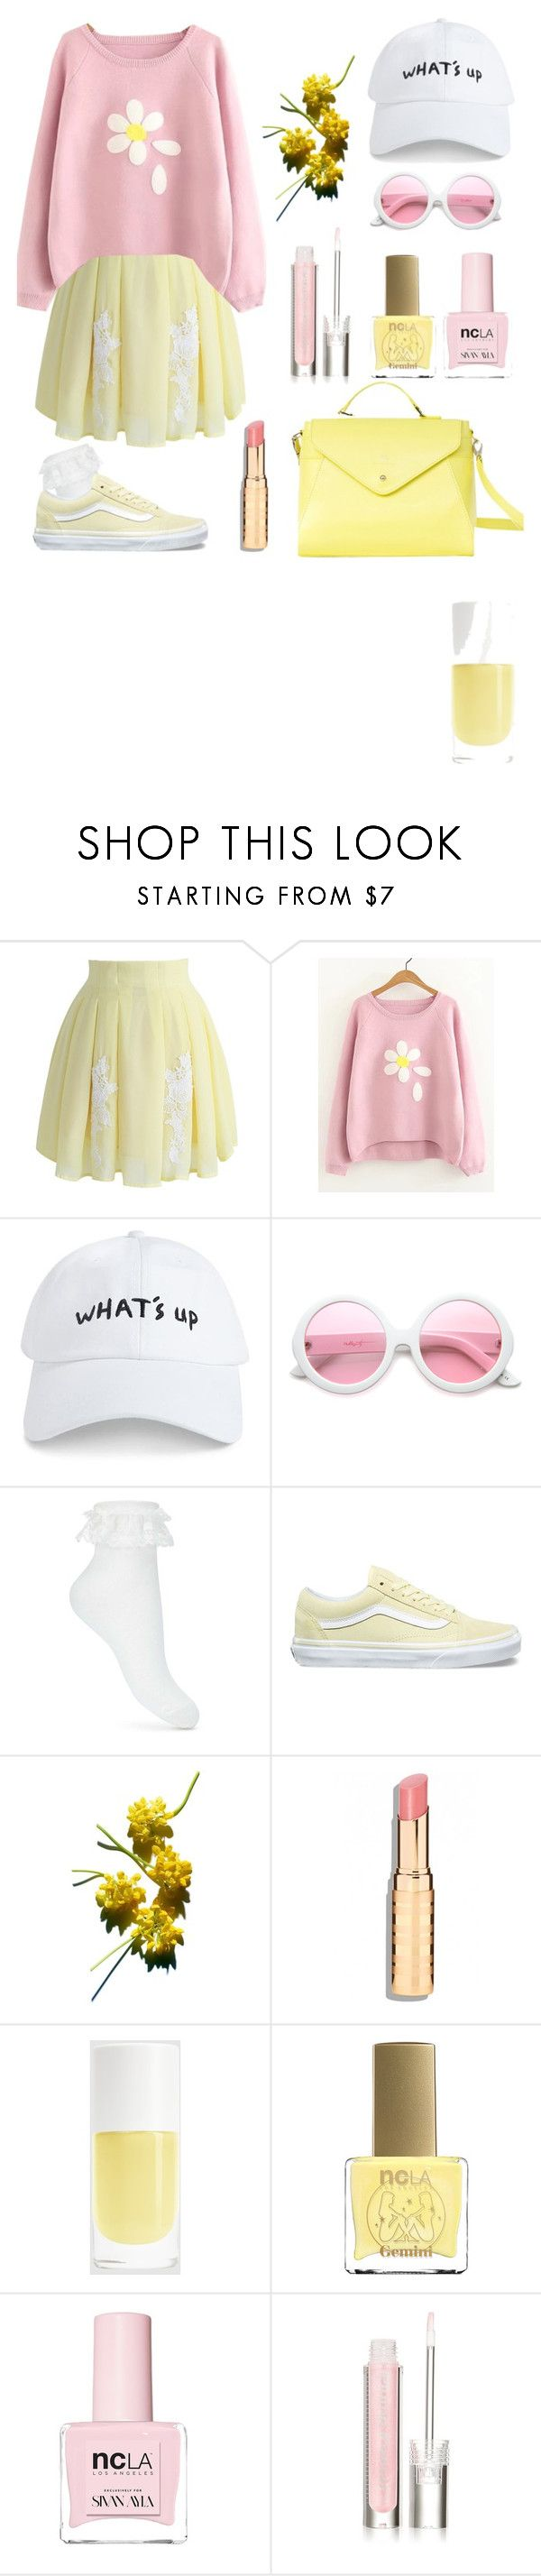 """yellow//pink"" by meowntown ❤ liked on Polyvore featuring Chicwish, 21 Men, ZeroUV, Miss Selfridge, Vans, ncLA, Physicians Formula and Paperthinks"